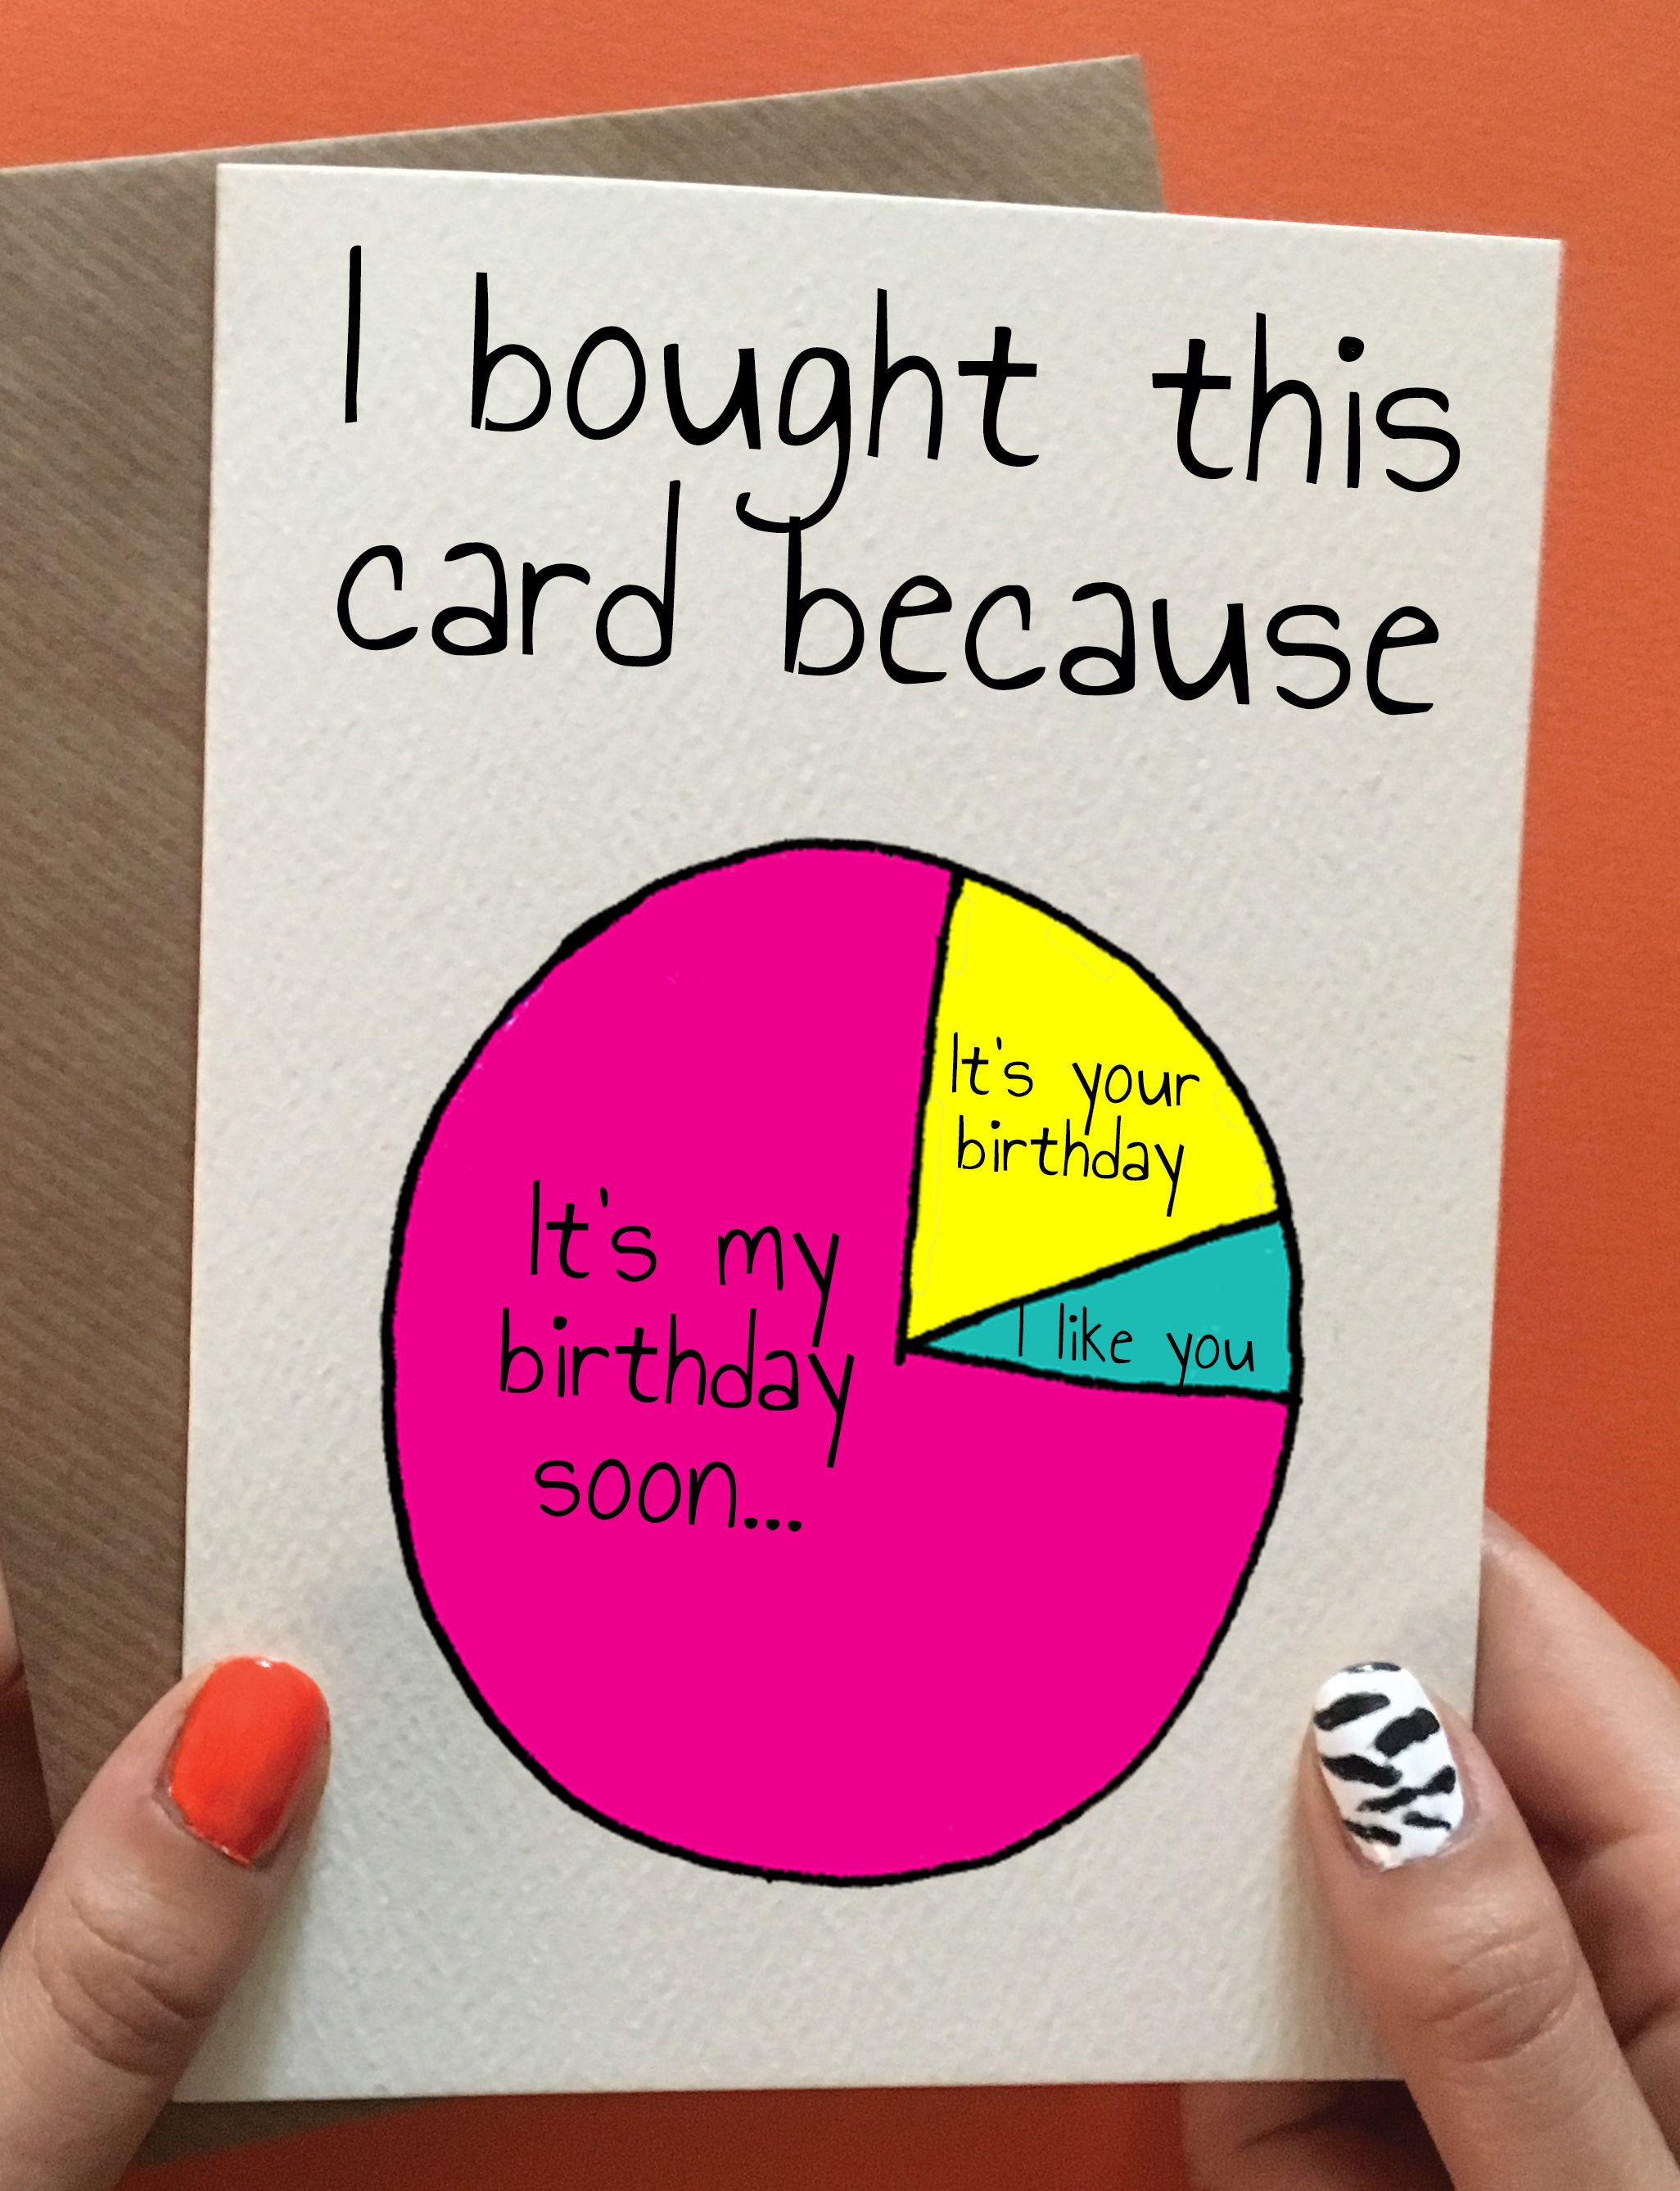 Funny Birthday Card Hilarious And Cheeky Handmade Birthday Card For Friend Birthday Cards For Friends Birthday Cards Funny Birthday Cards